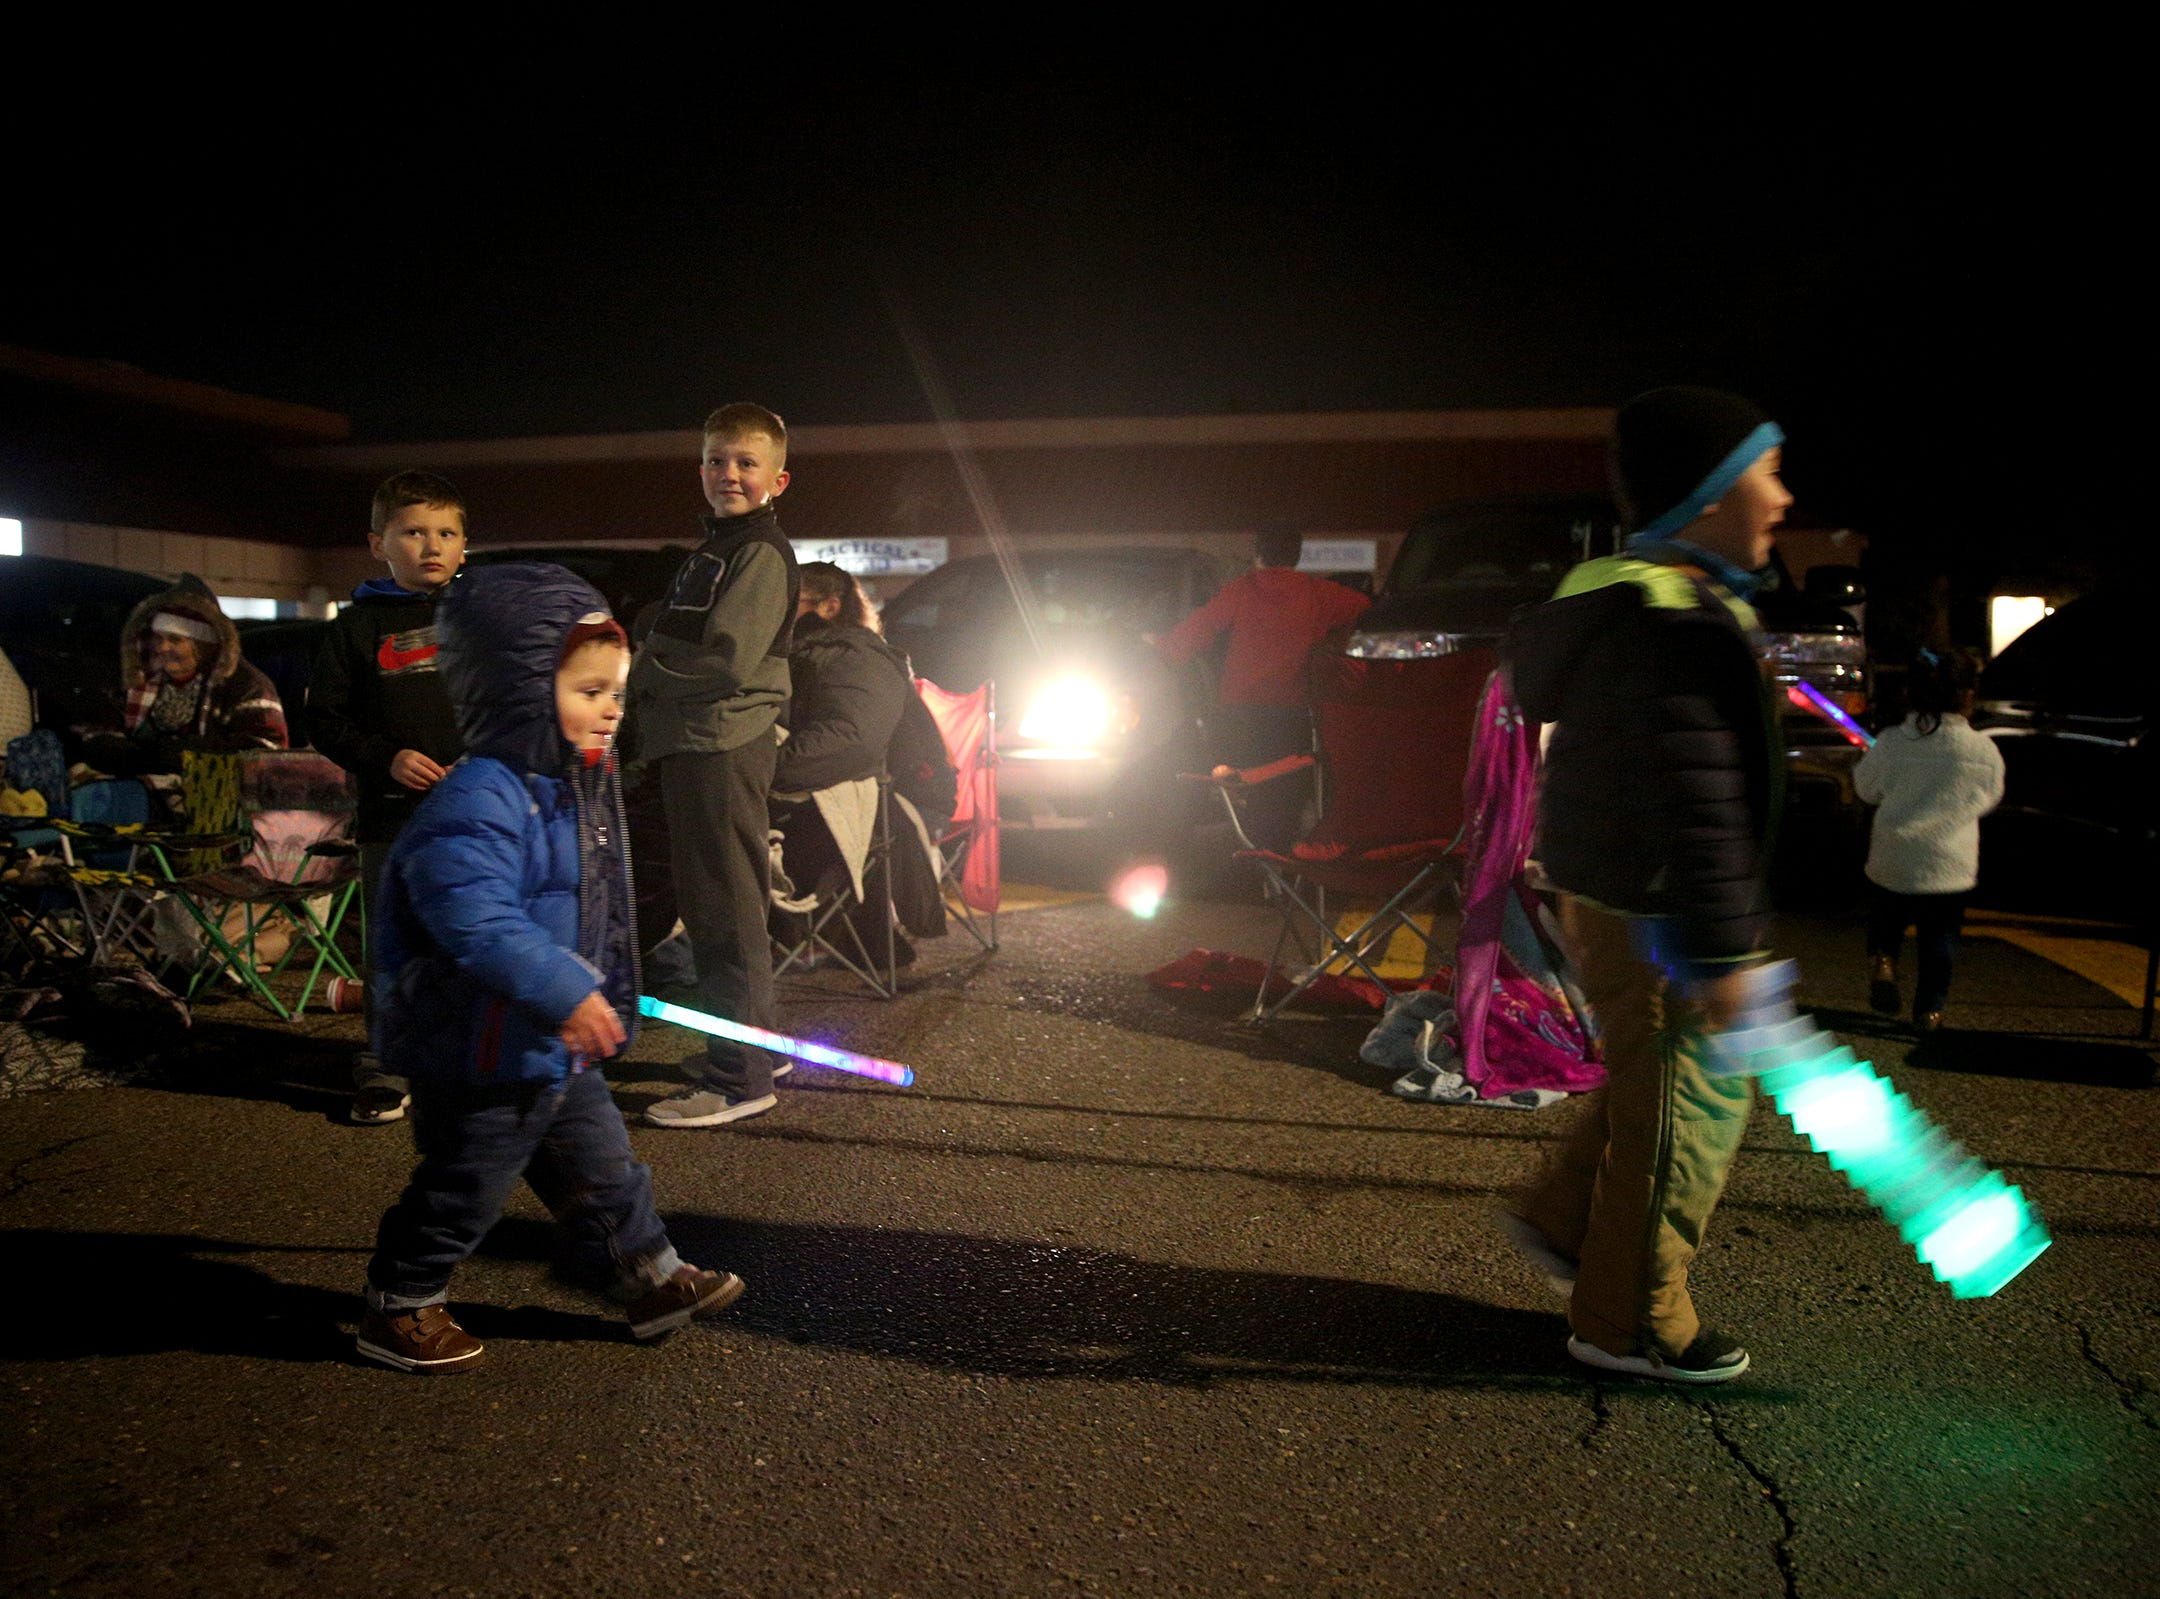 Two-year-old Nico Hernandez chases another child with his light-up sword during the Keizer Holiday Lights Parade in Keizer on Saturday, Dec. 8, 2018.